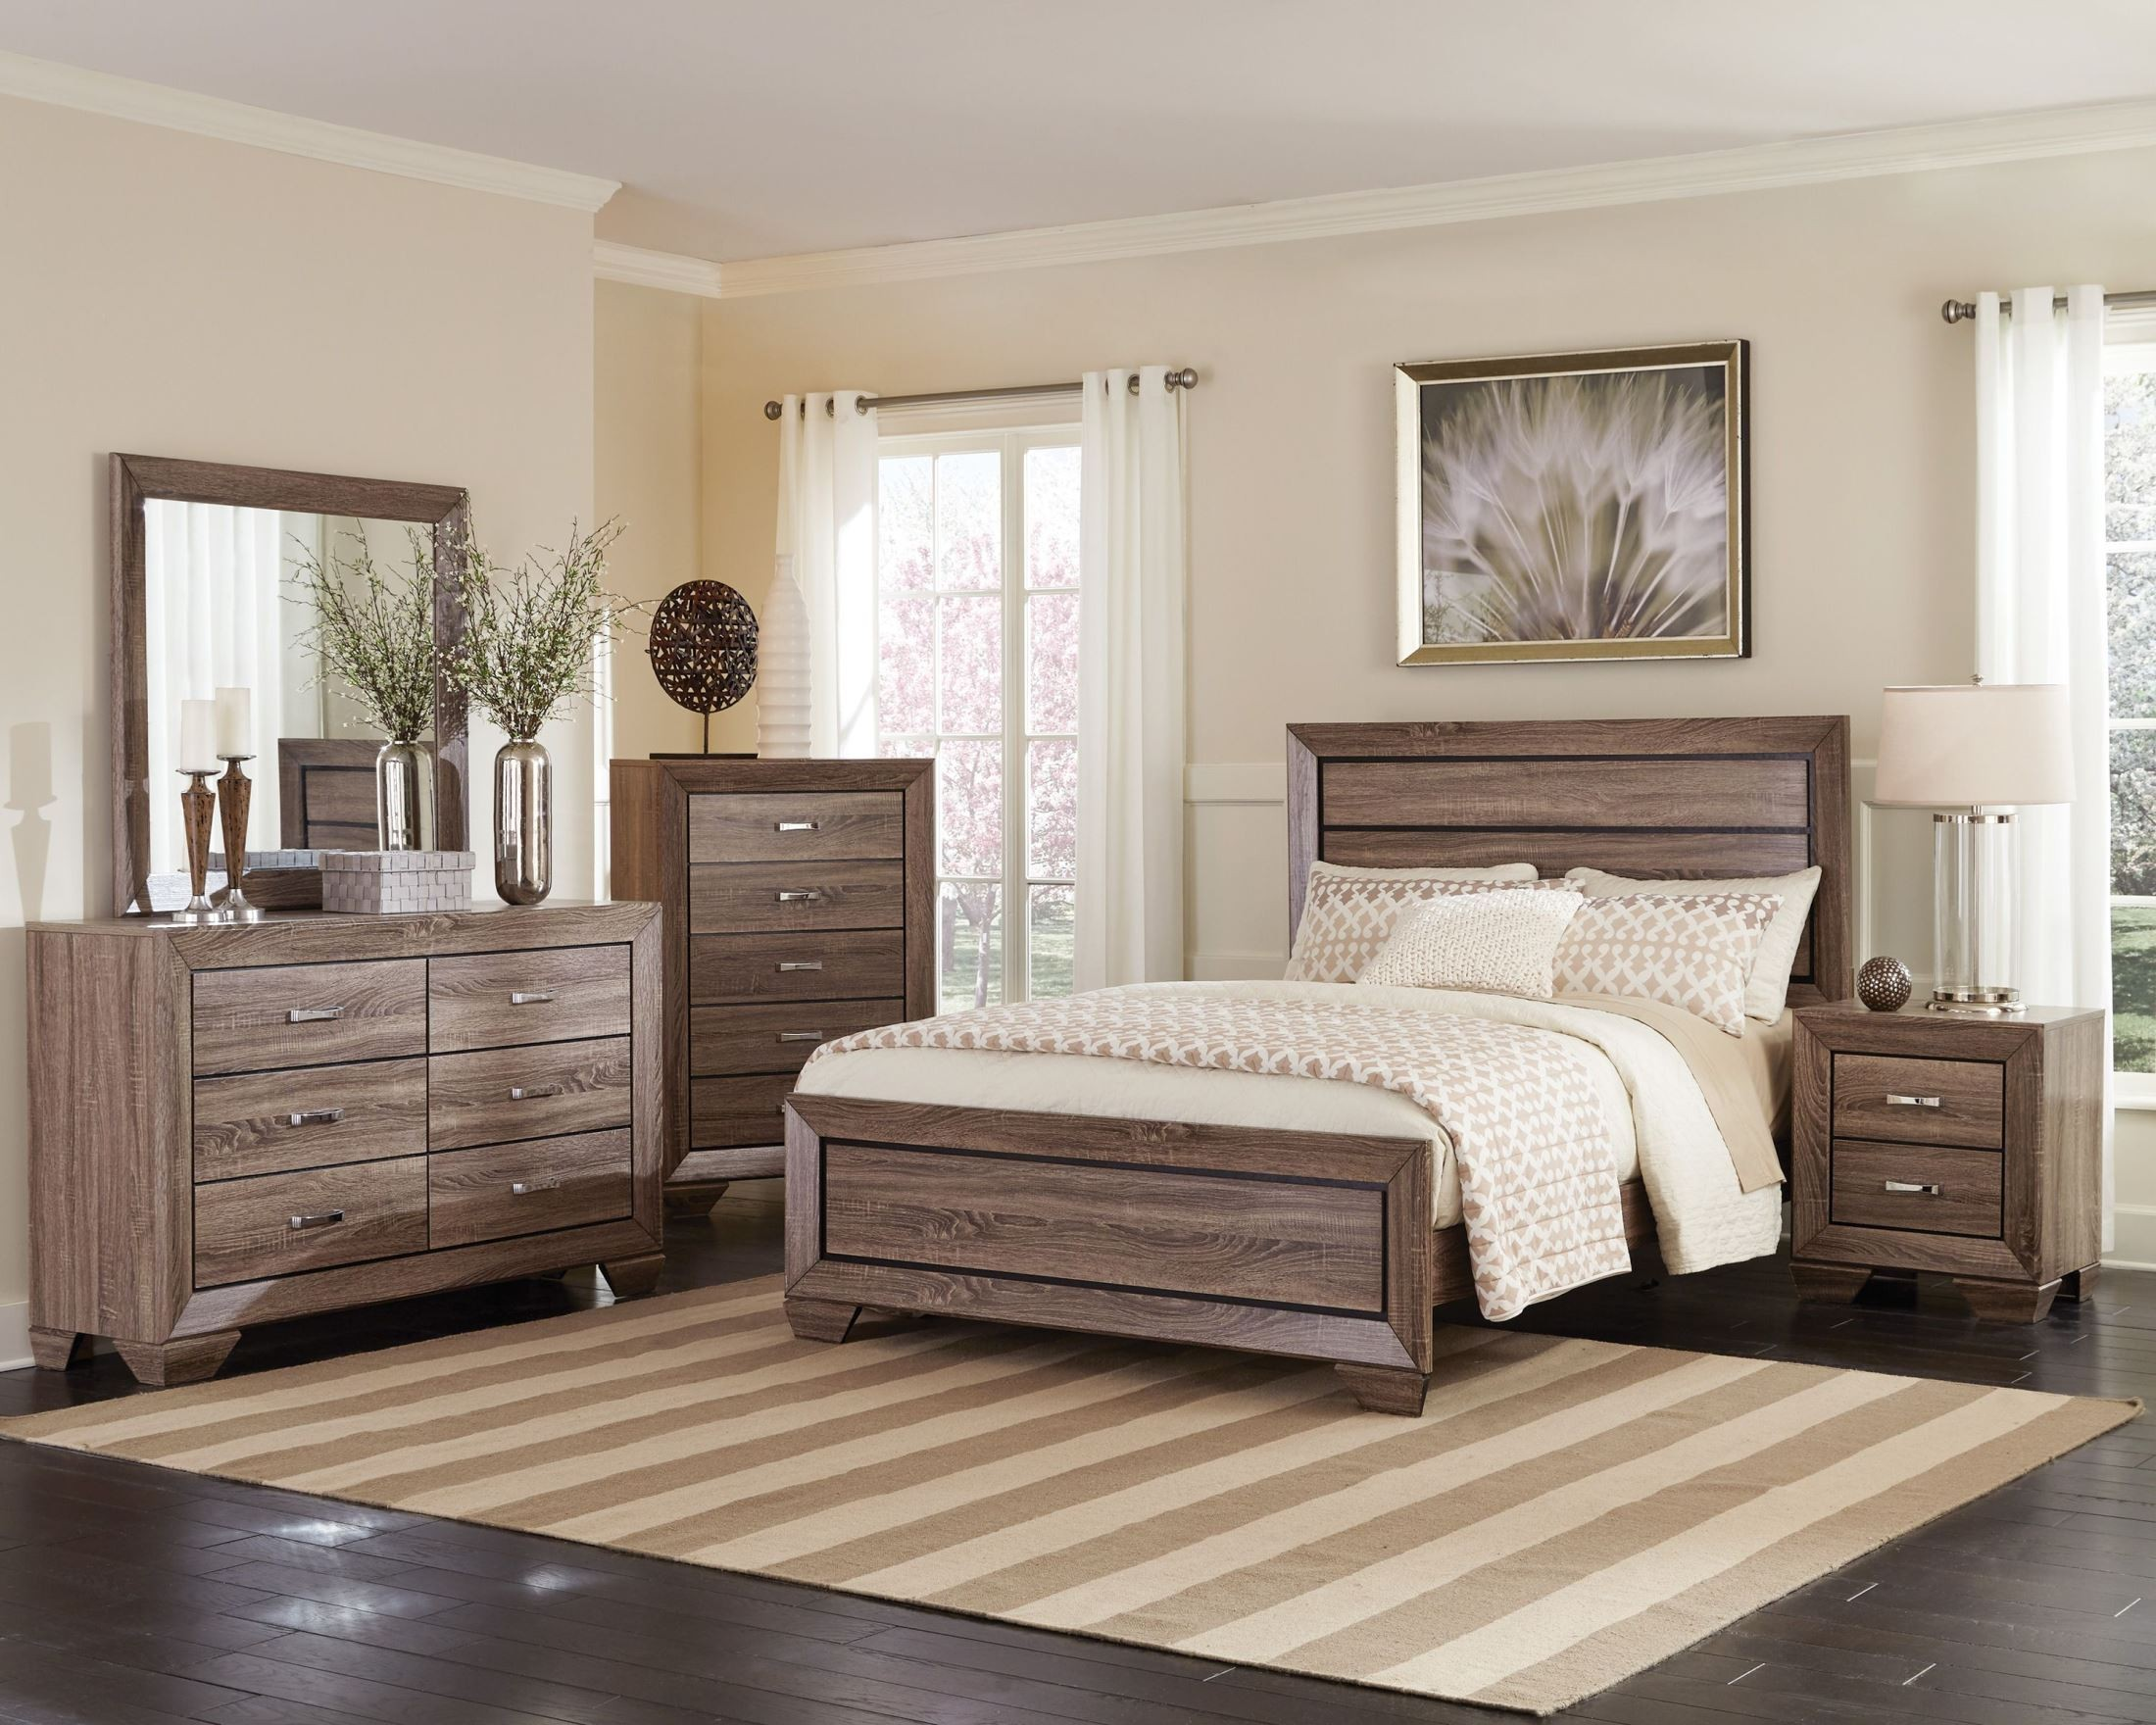 Kauffman Washed Taupe Panel Bedroom Set from Coaster 204191Q  Coleman Furniture